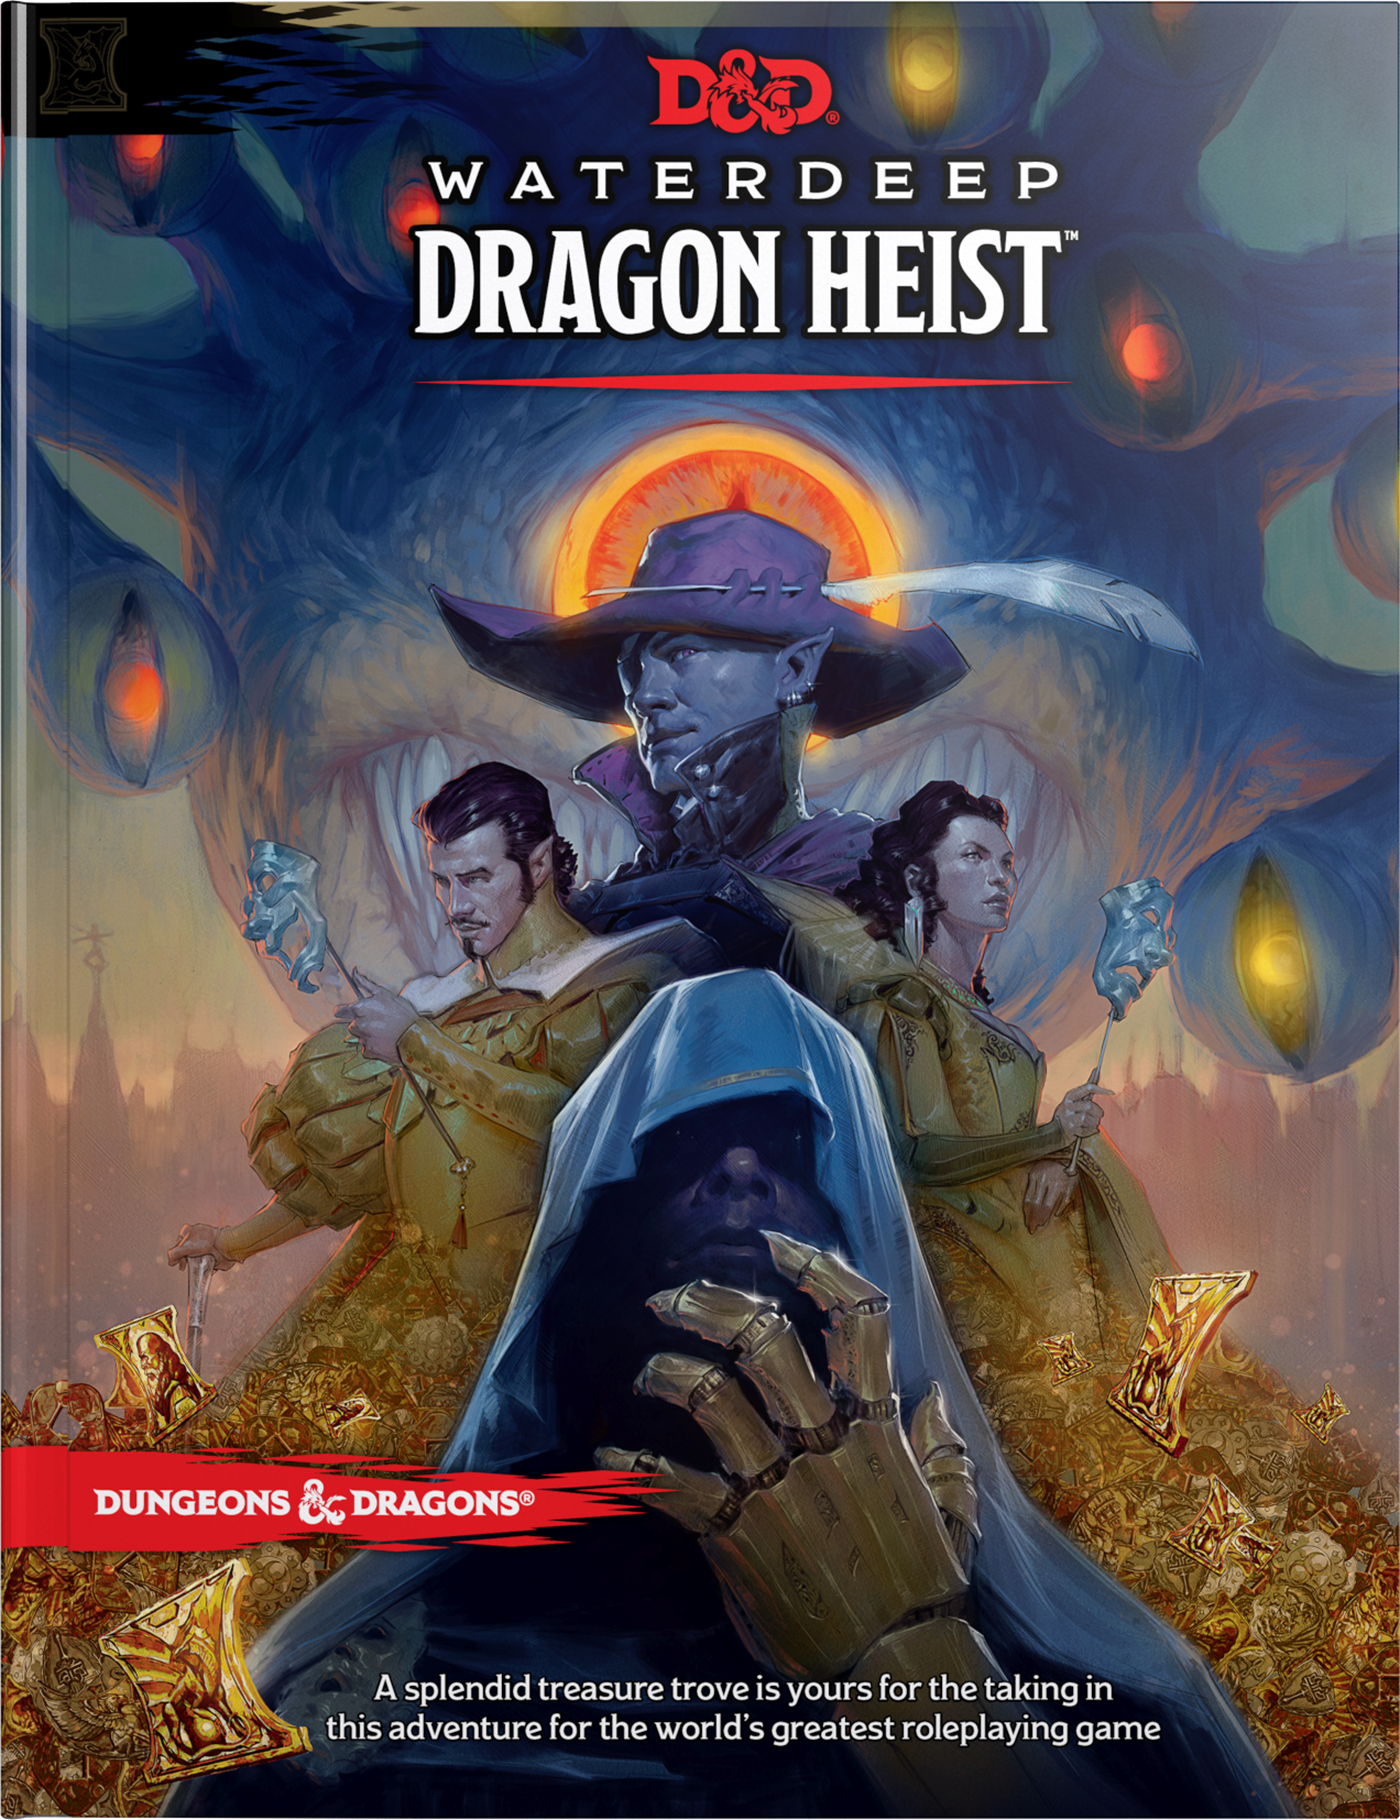 Waterdeep: Dragon Heist | Forgotten Realms Wiki | FANDOM powered by